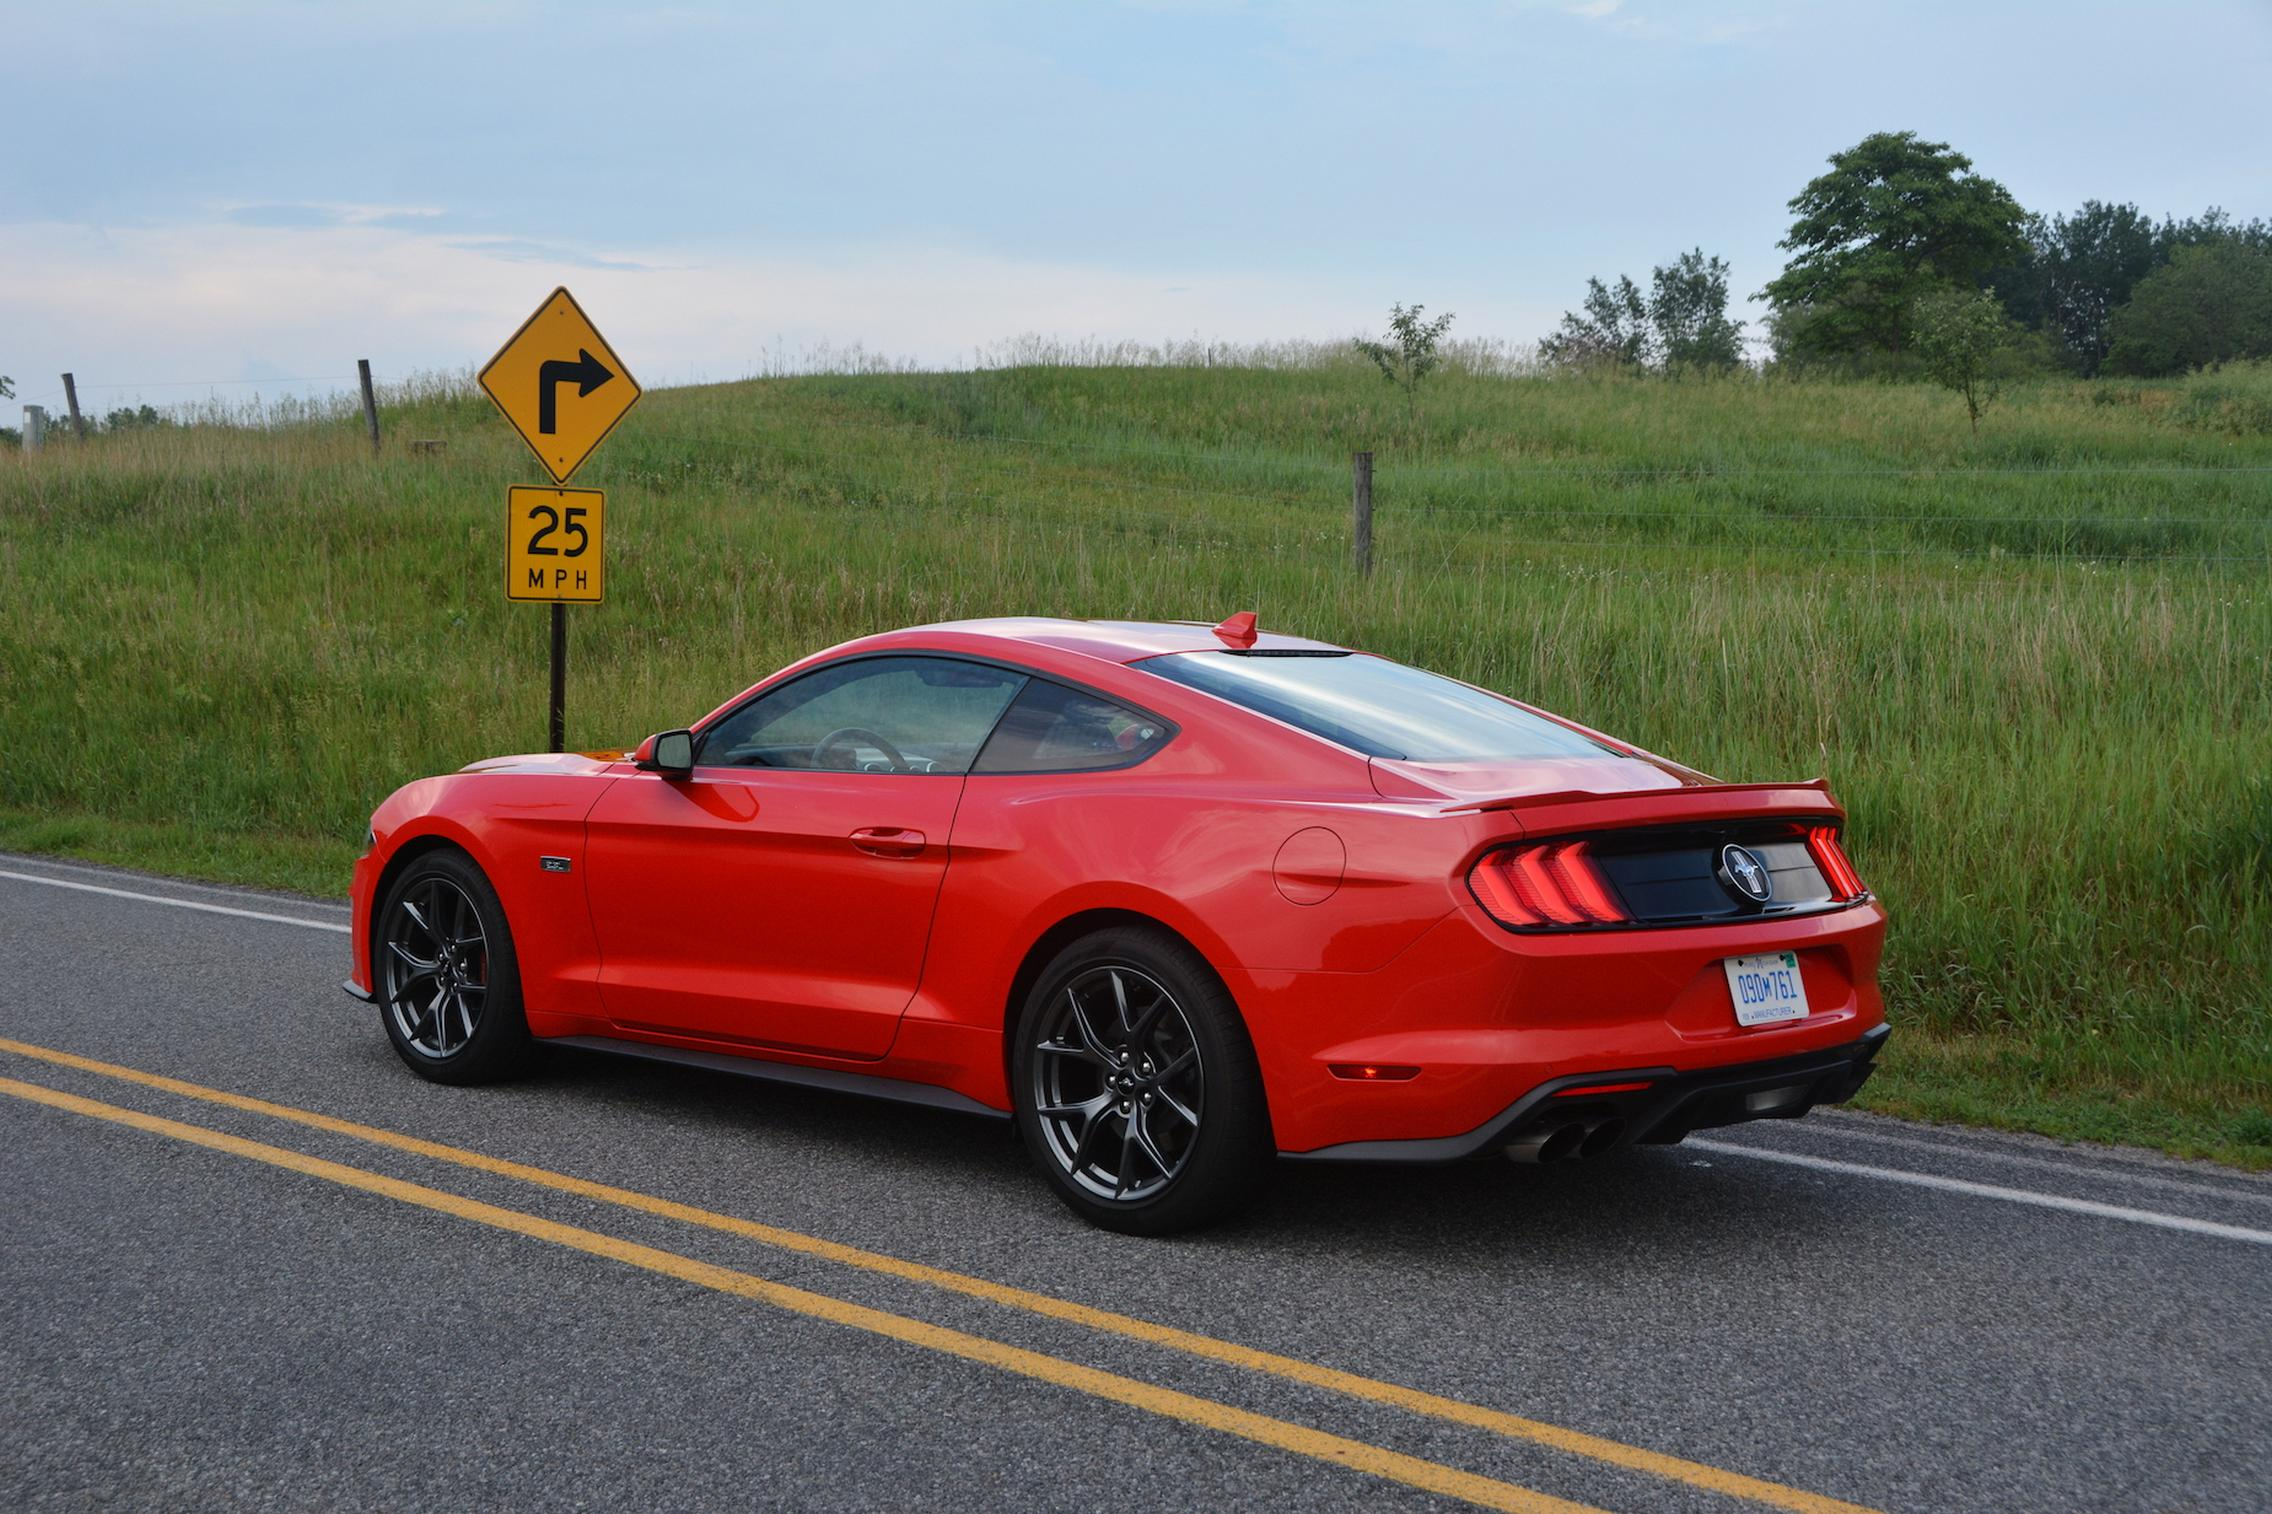 2021 Ford Mustang EcoBoost rear side